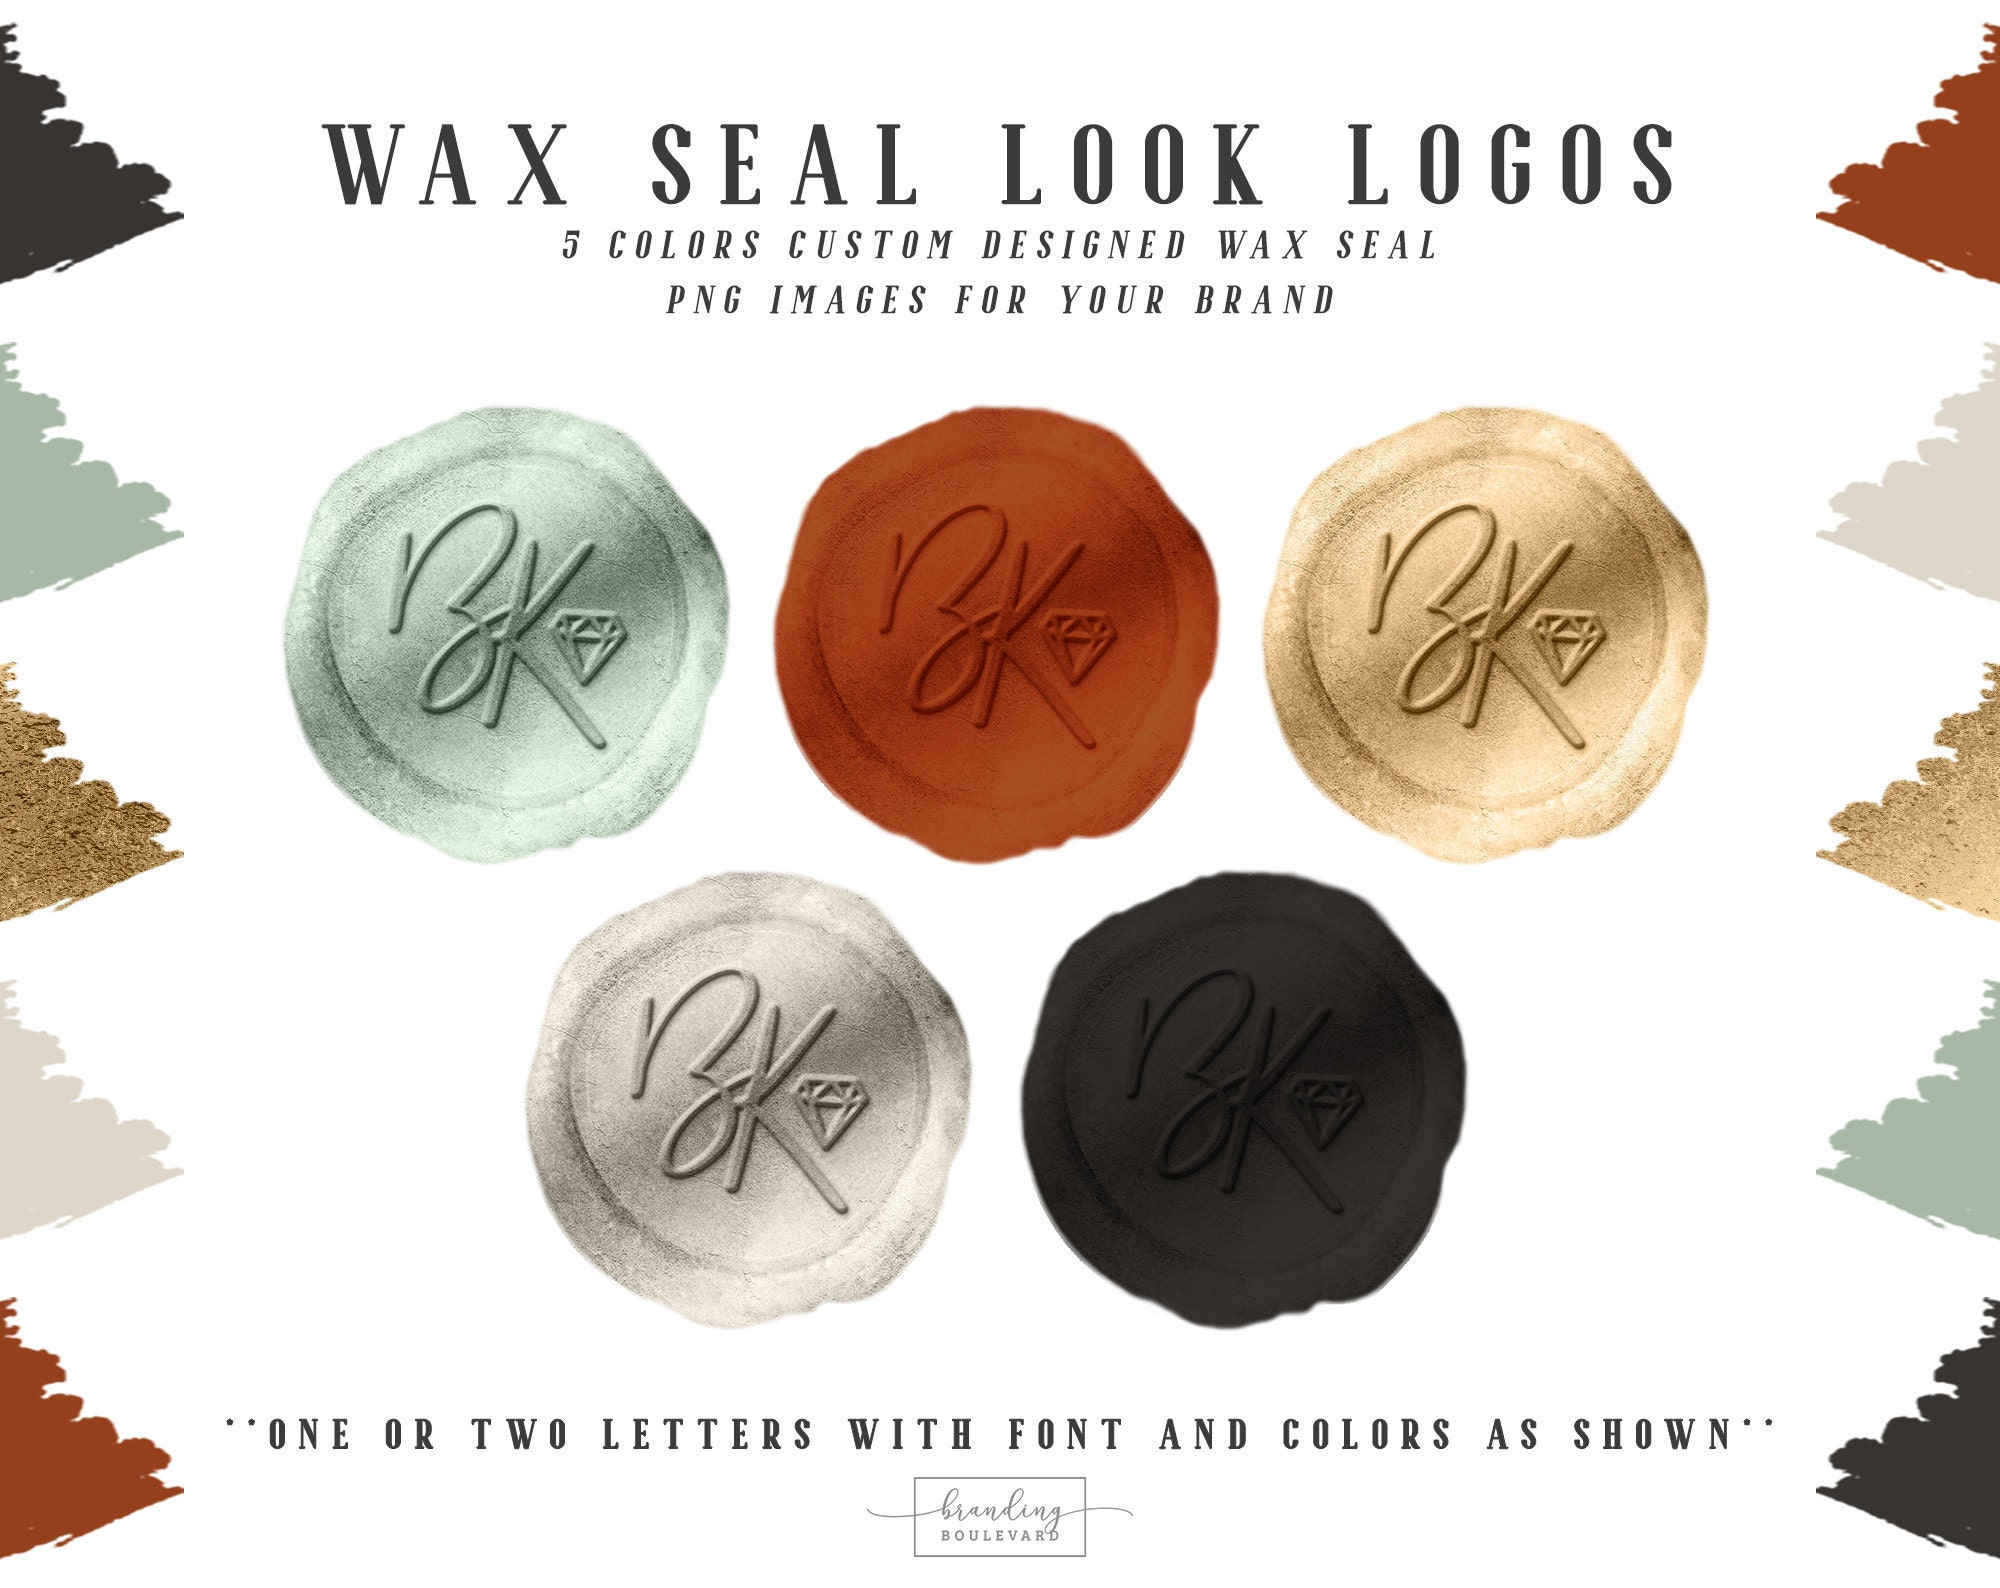 Wax Seal Look Logos - From the Bella Knight Collection in the 5 colors shown - Get them customized with your initials!